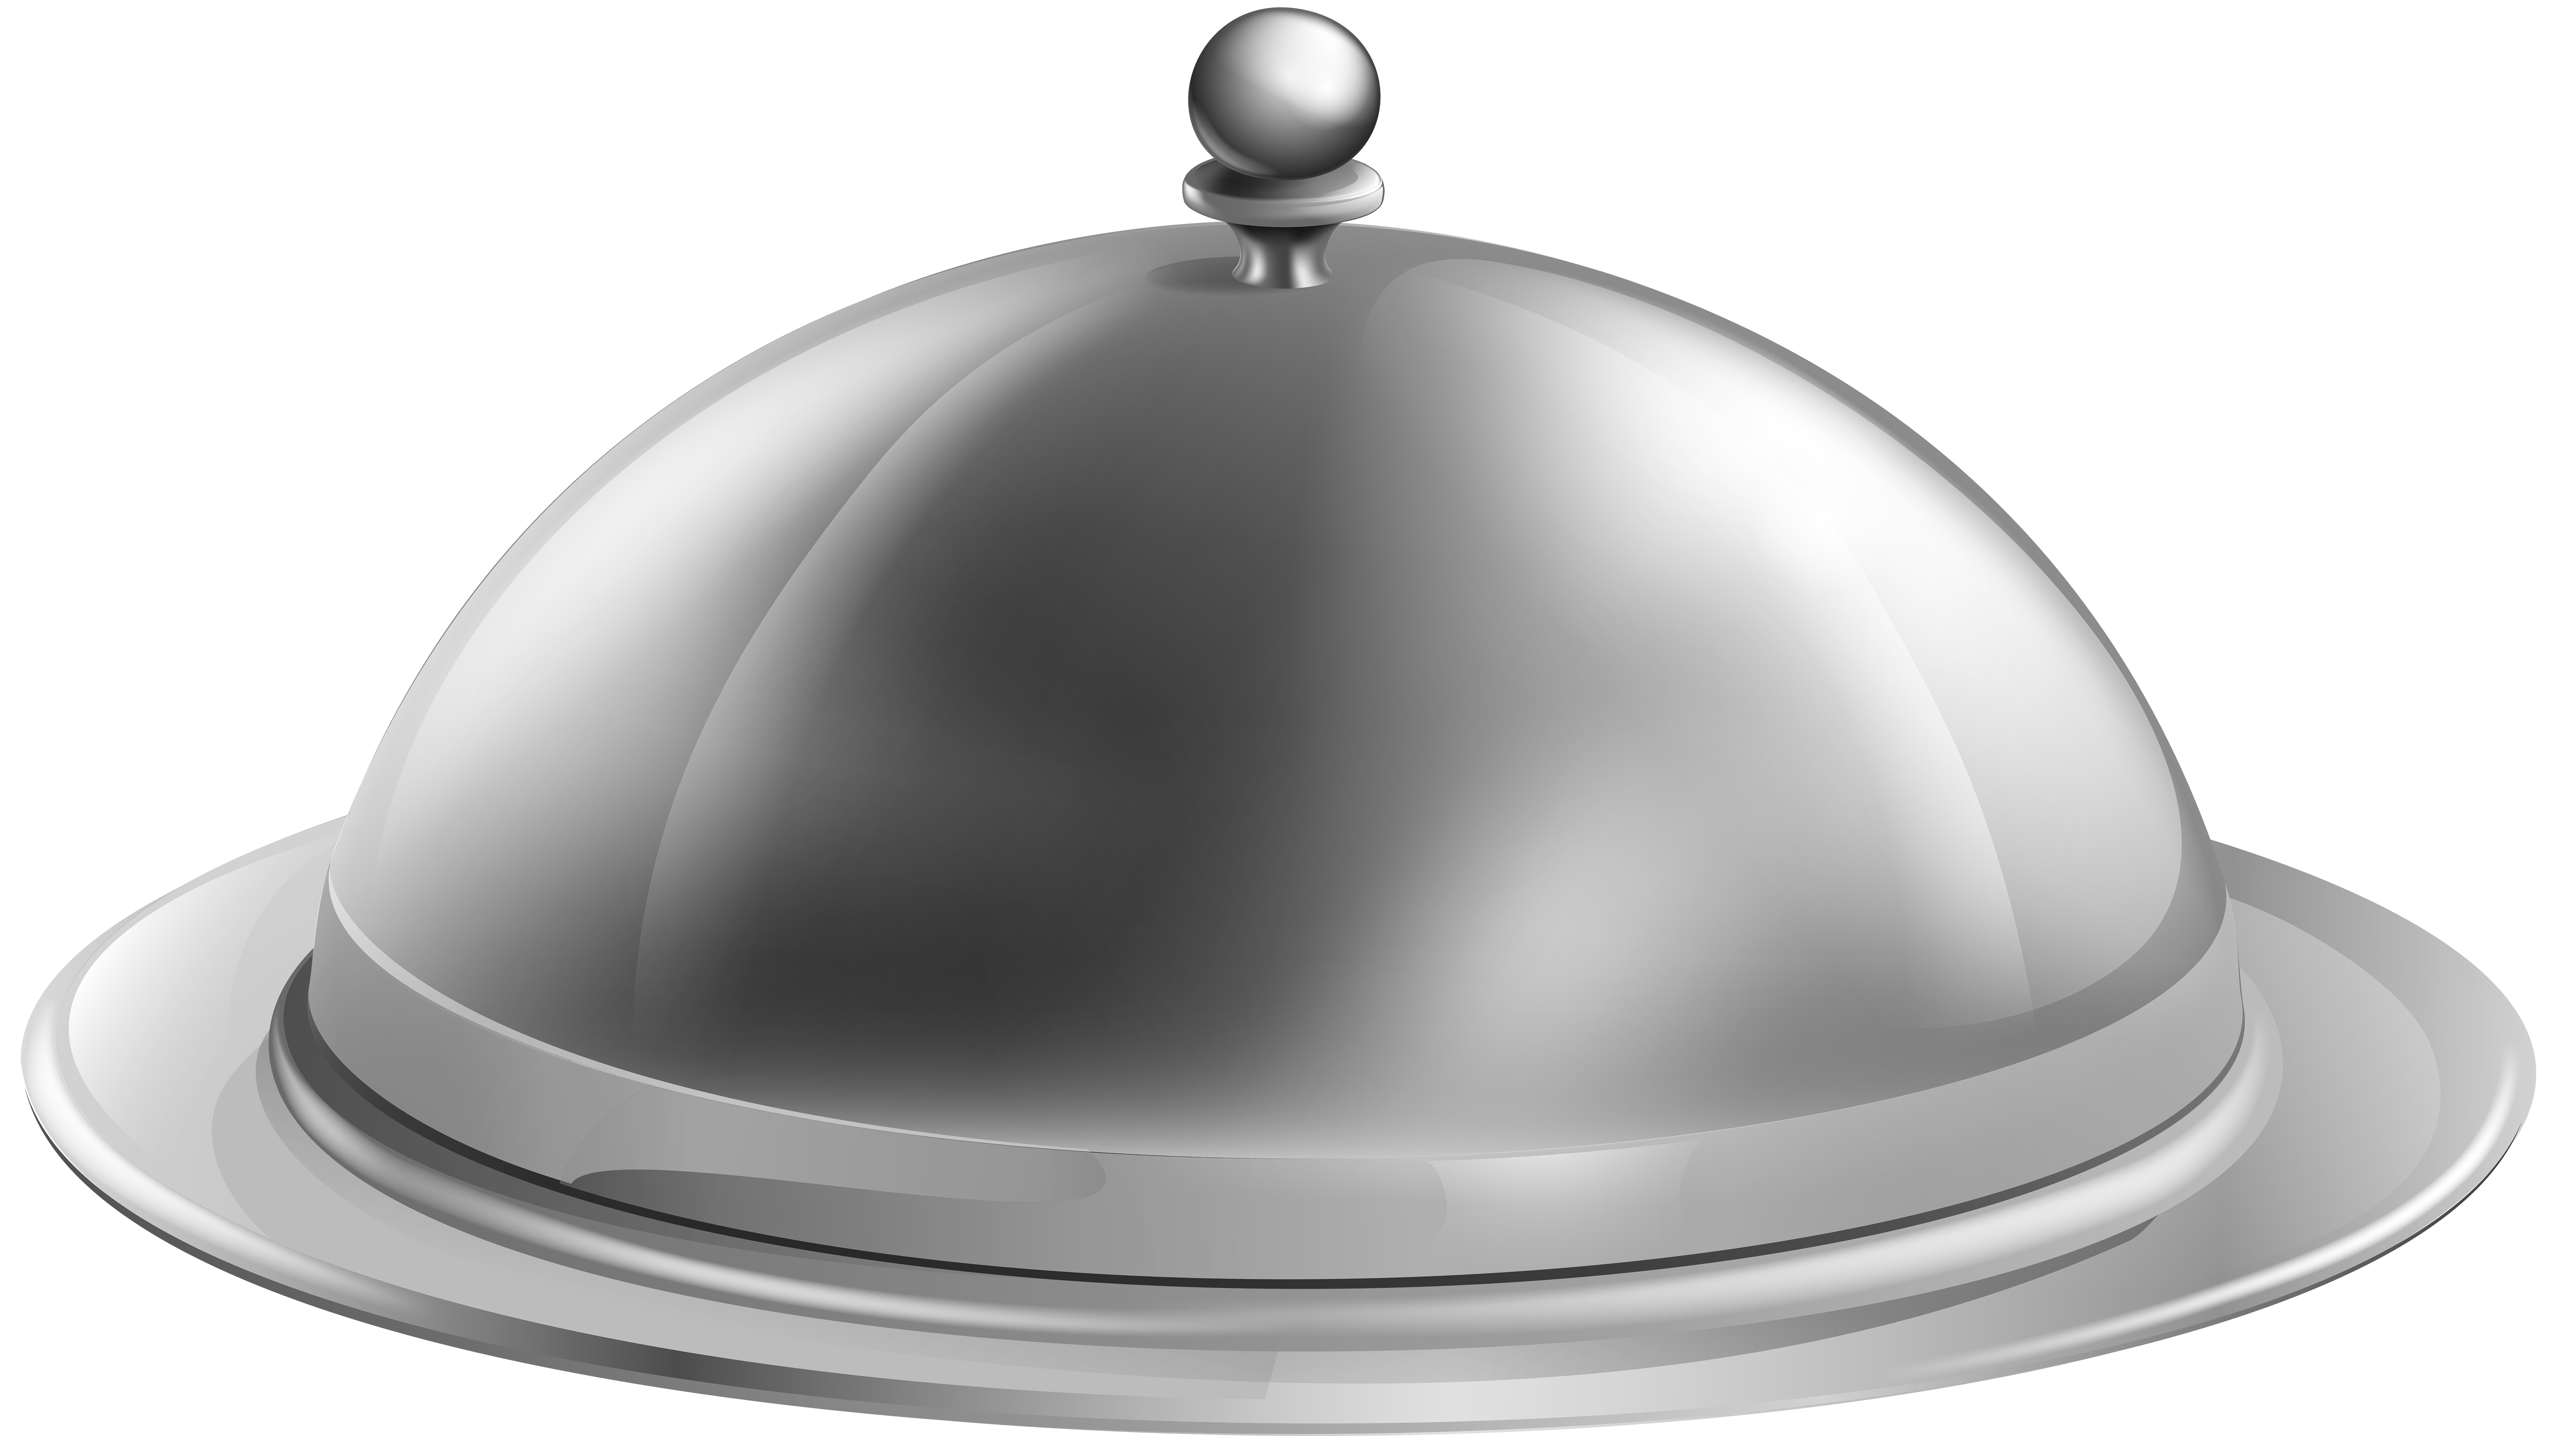 Silver Serving Tray PNG Clip Art.